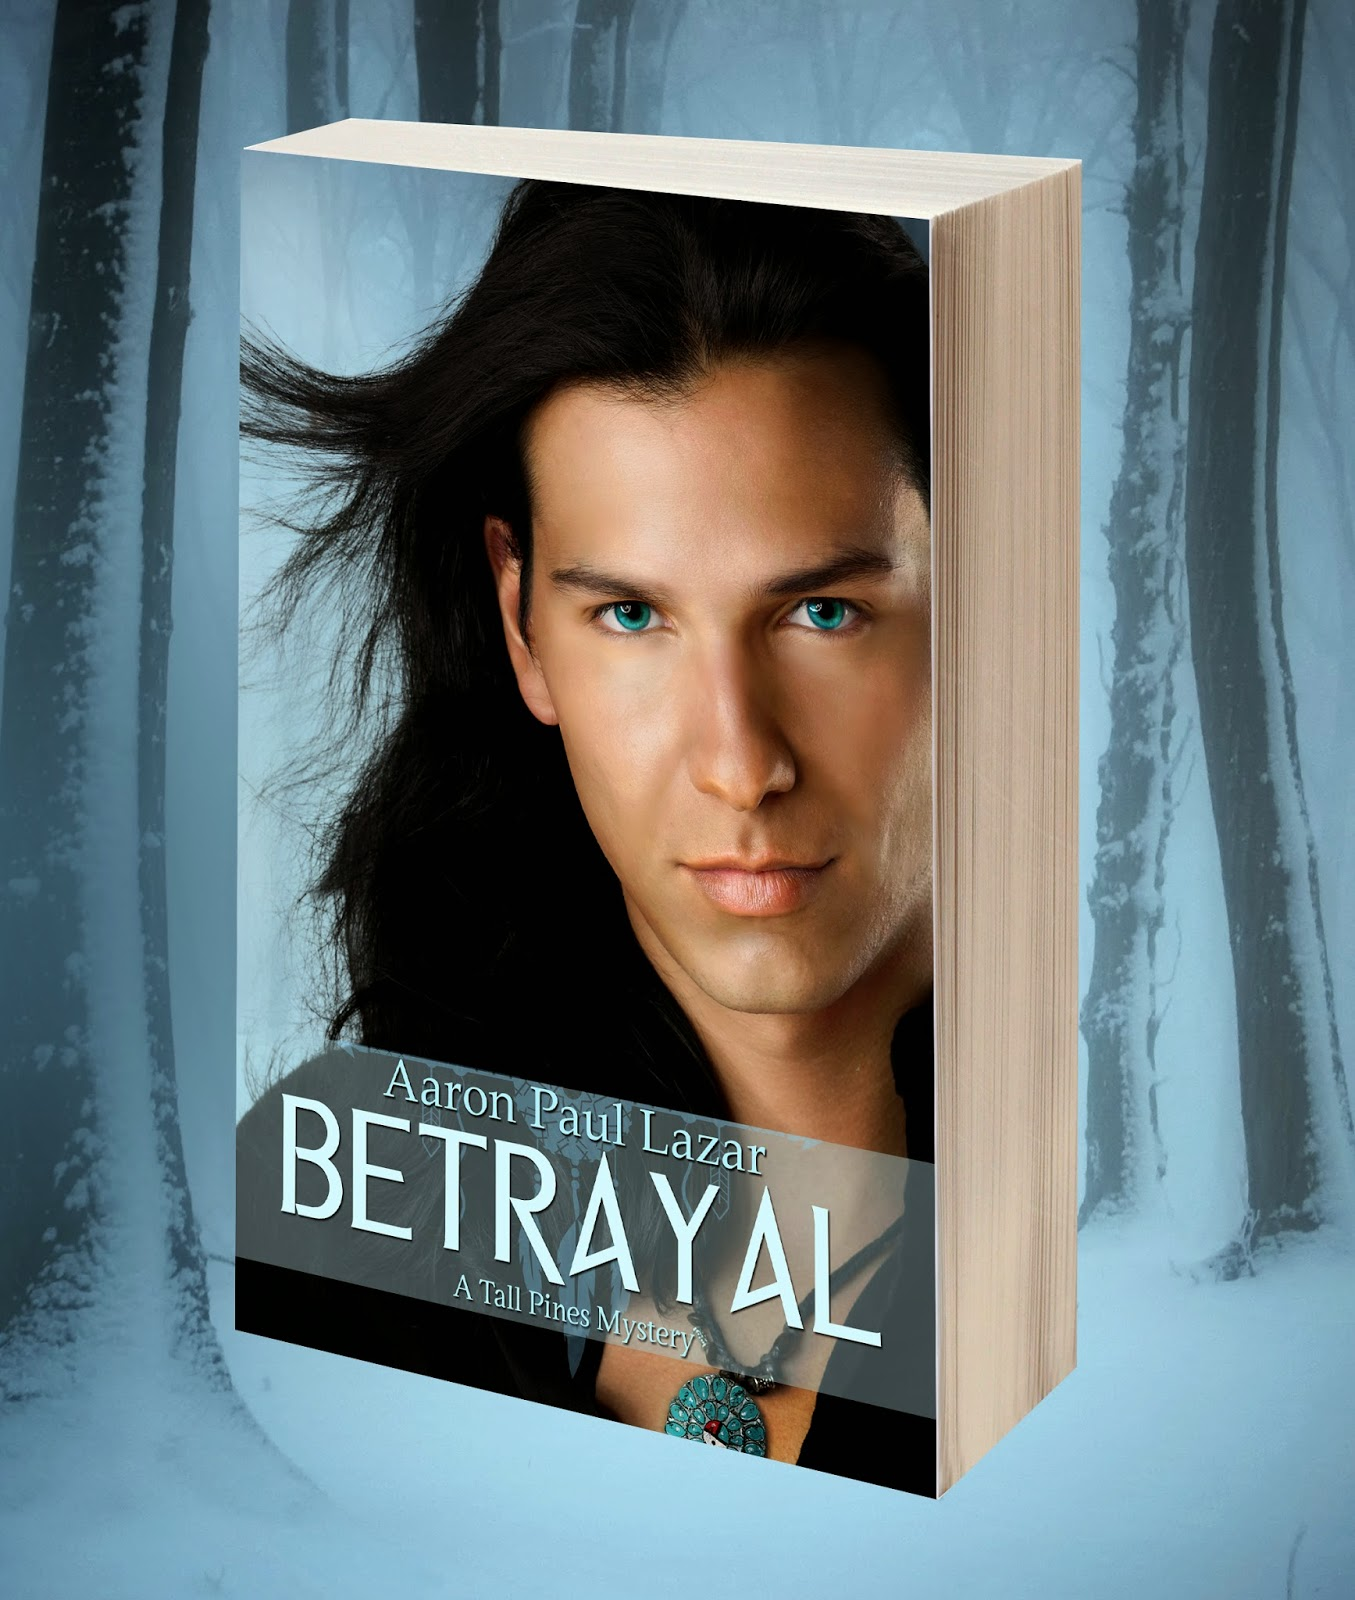 http://www.amazon.com/Betrayal-Tall-Pines-Mystery-Mysteries-ebook/dp/B00N2134W0/ref=pd_sim_sbs_b_1?ie=UTF8&refRID=1VTZJK3TGTH6RA57N1RR